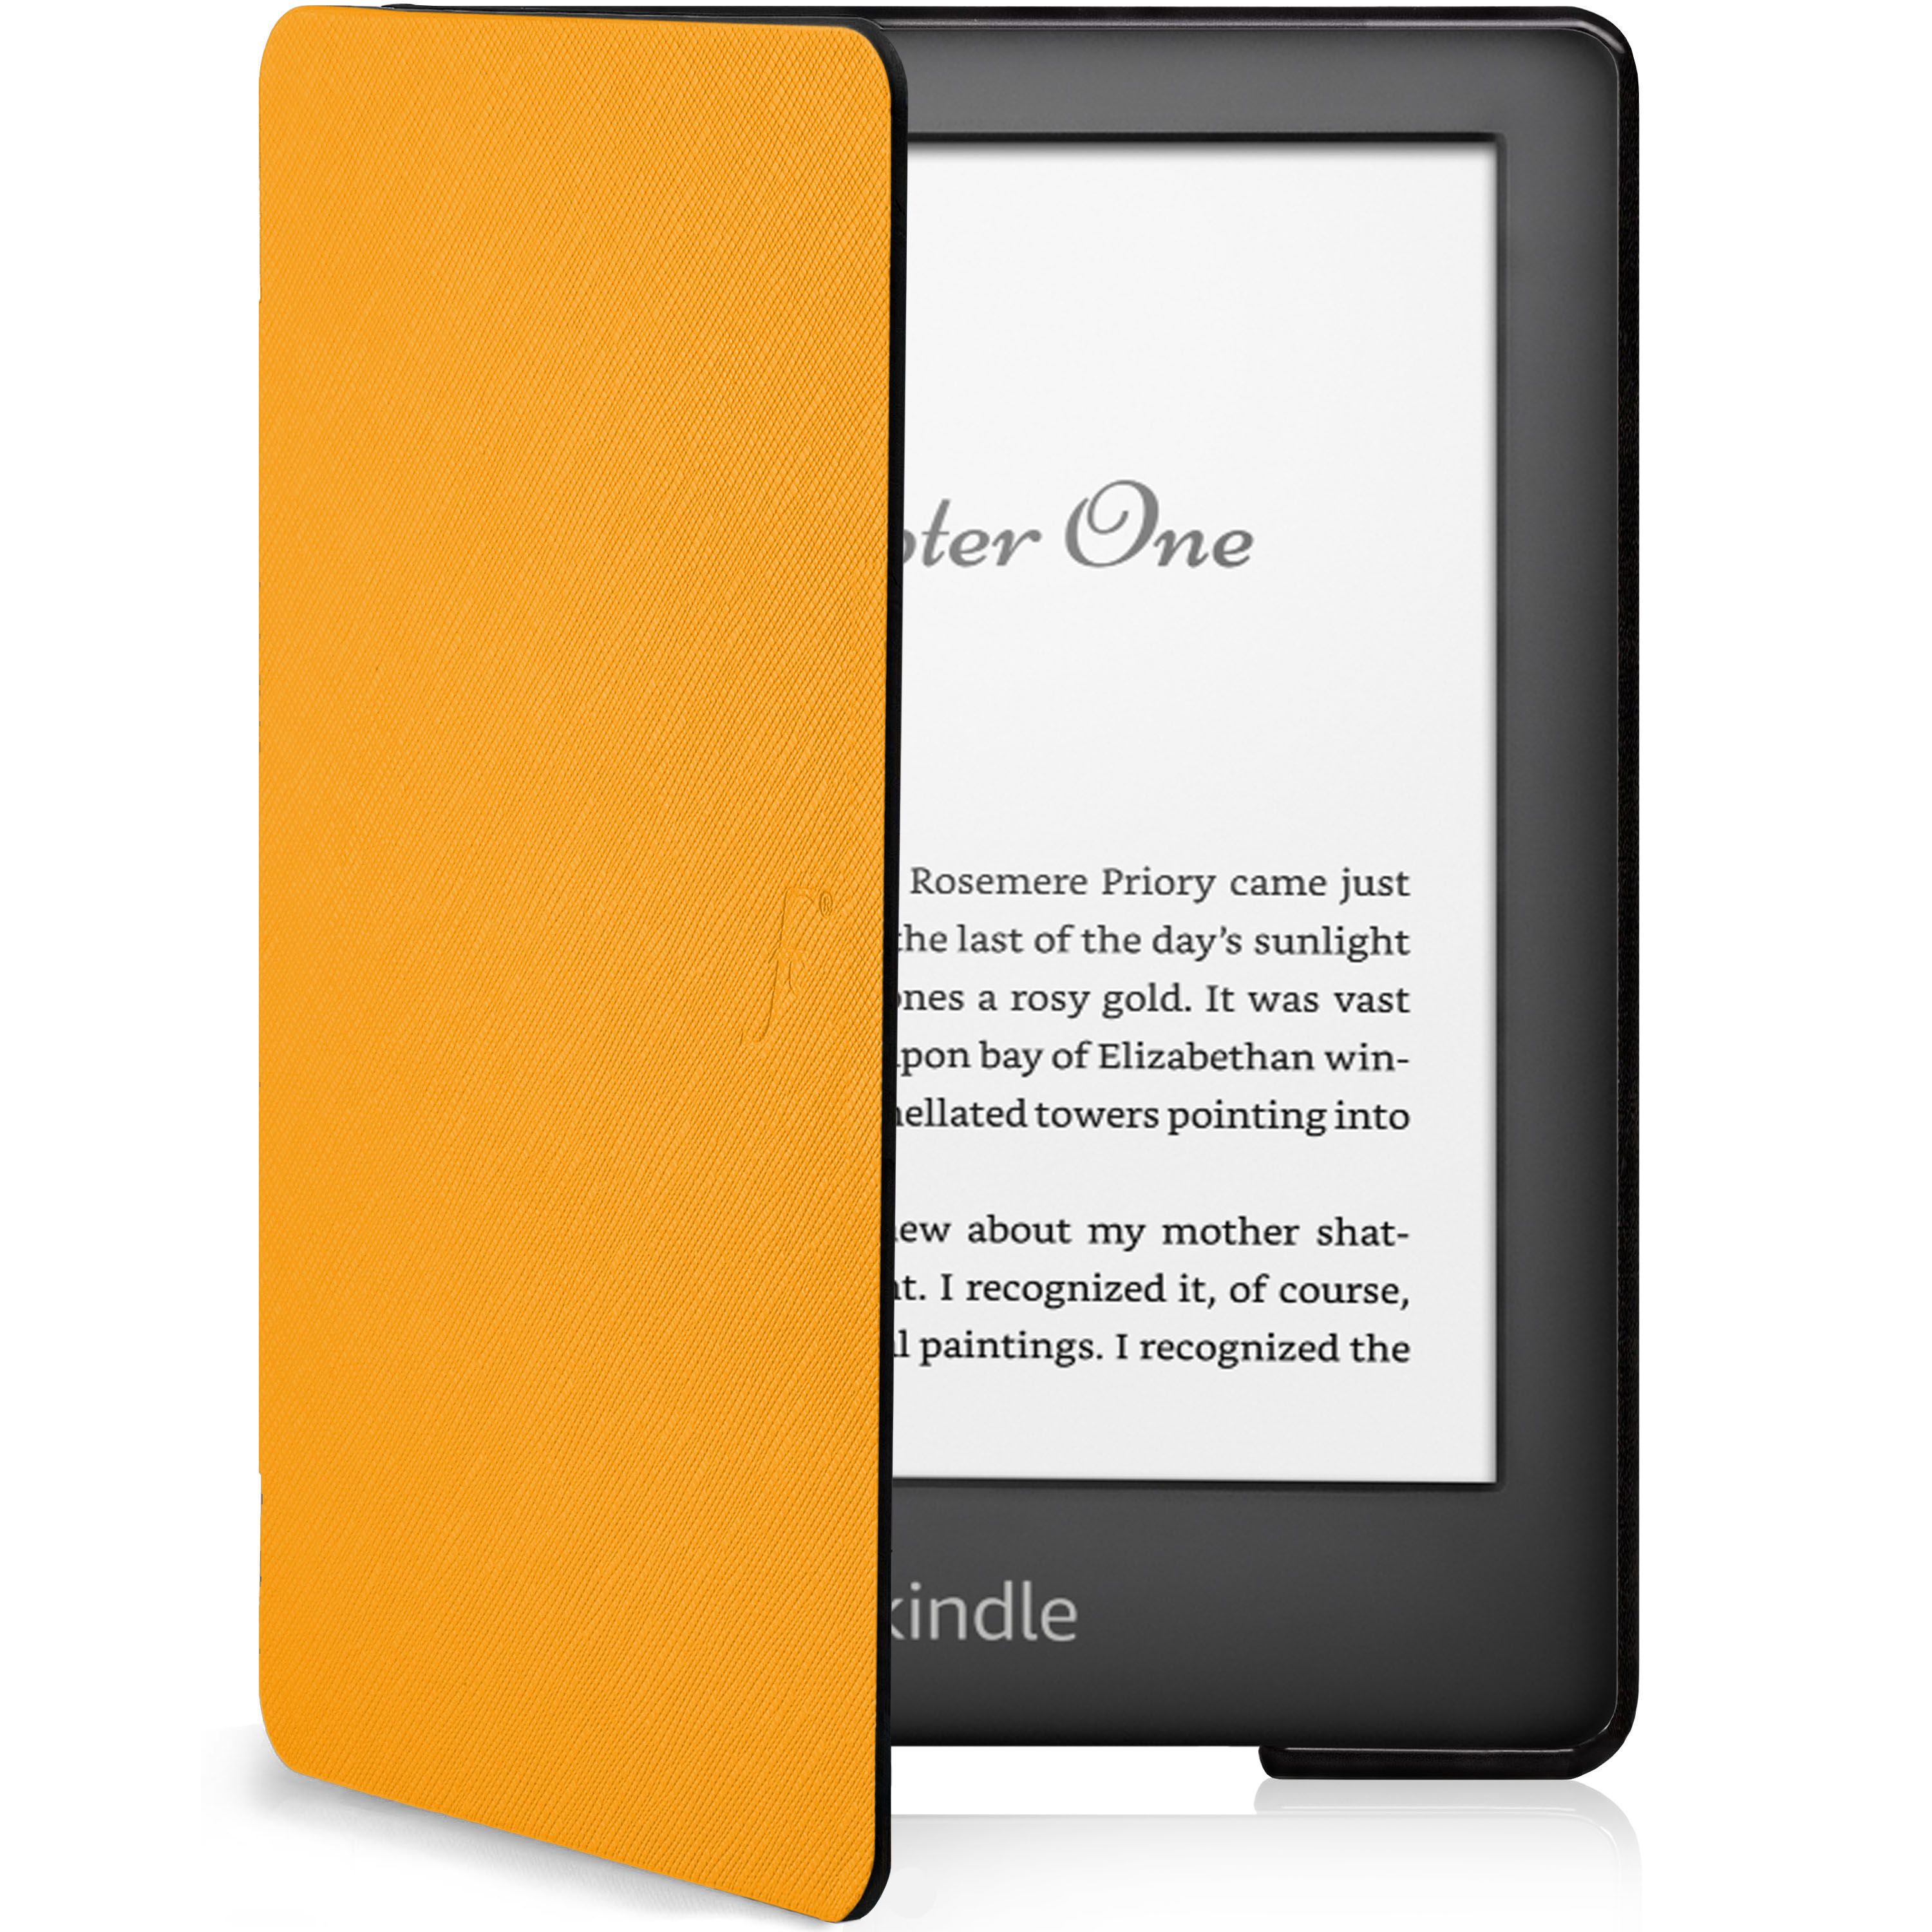 Kindle 2019 Case | Smart Protective Cover Case Shell | Ultra Slim Lightweight by Ebay Seller